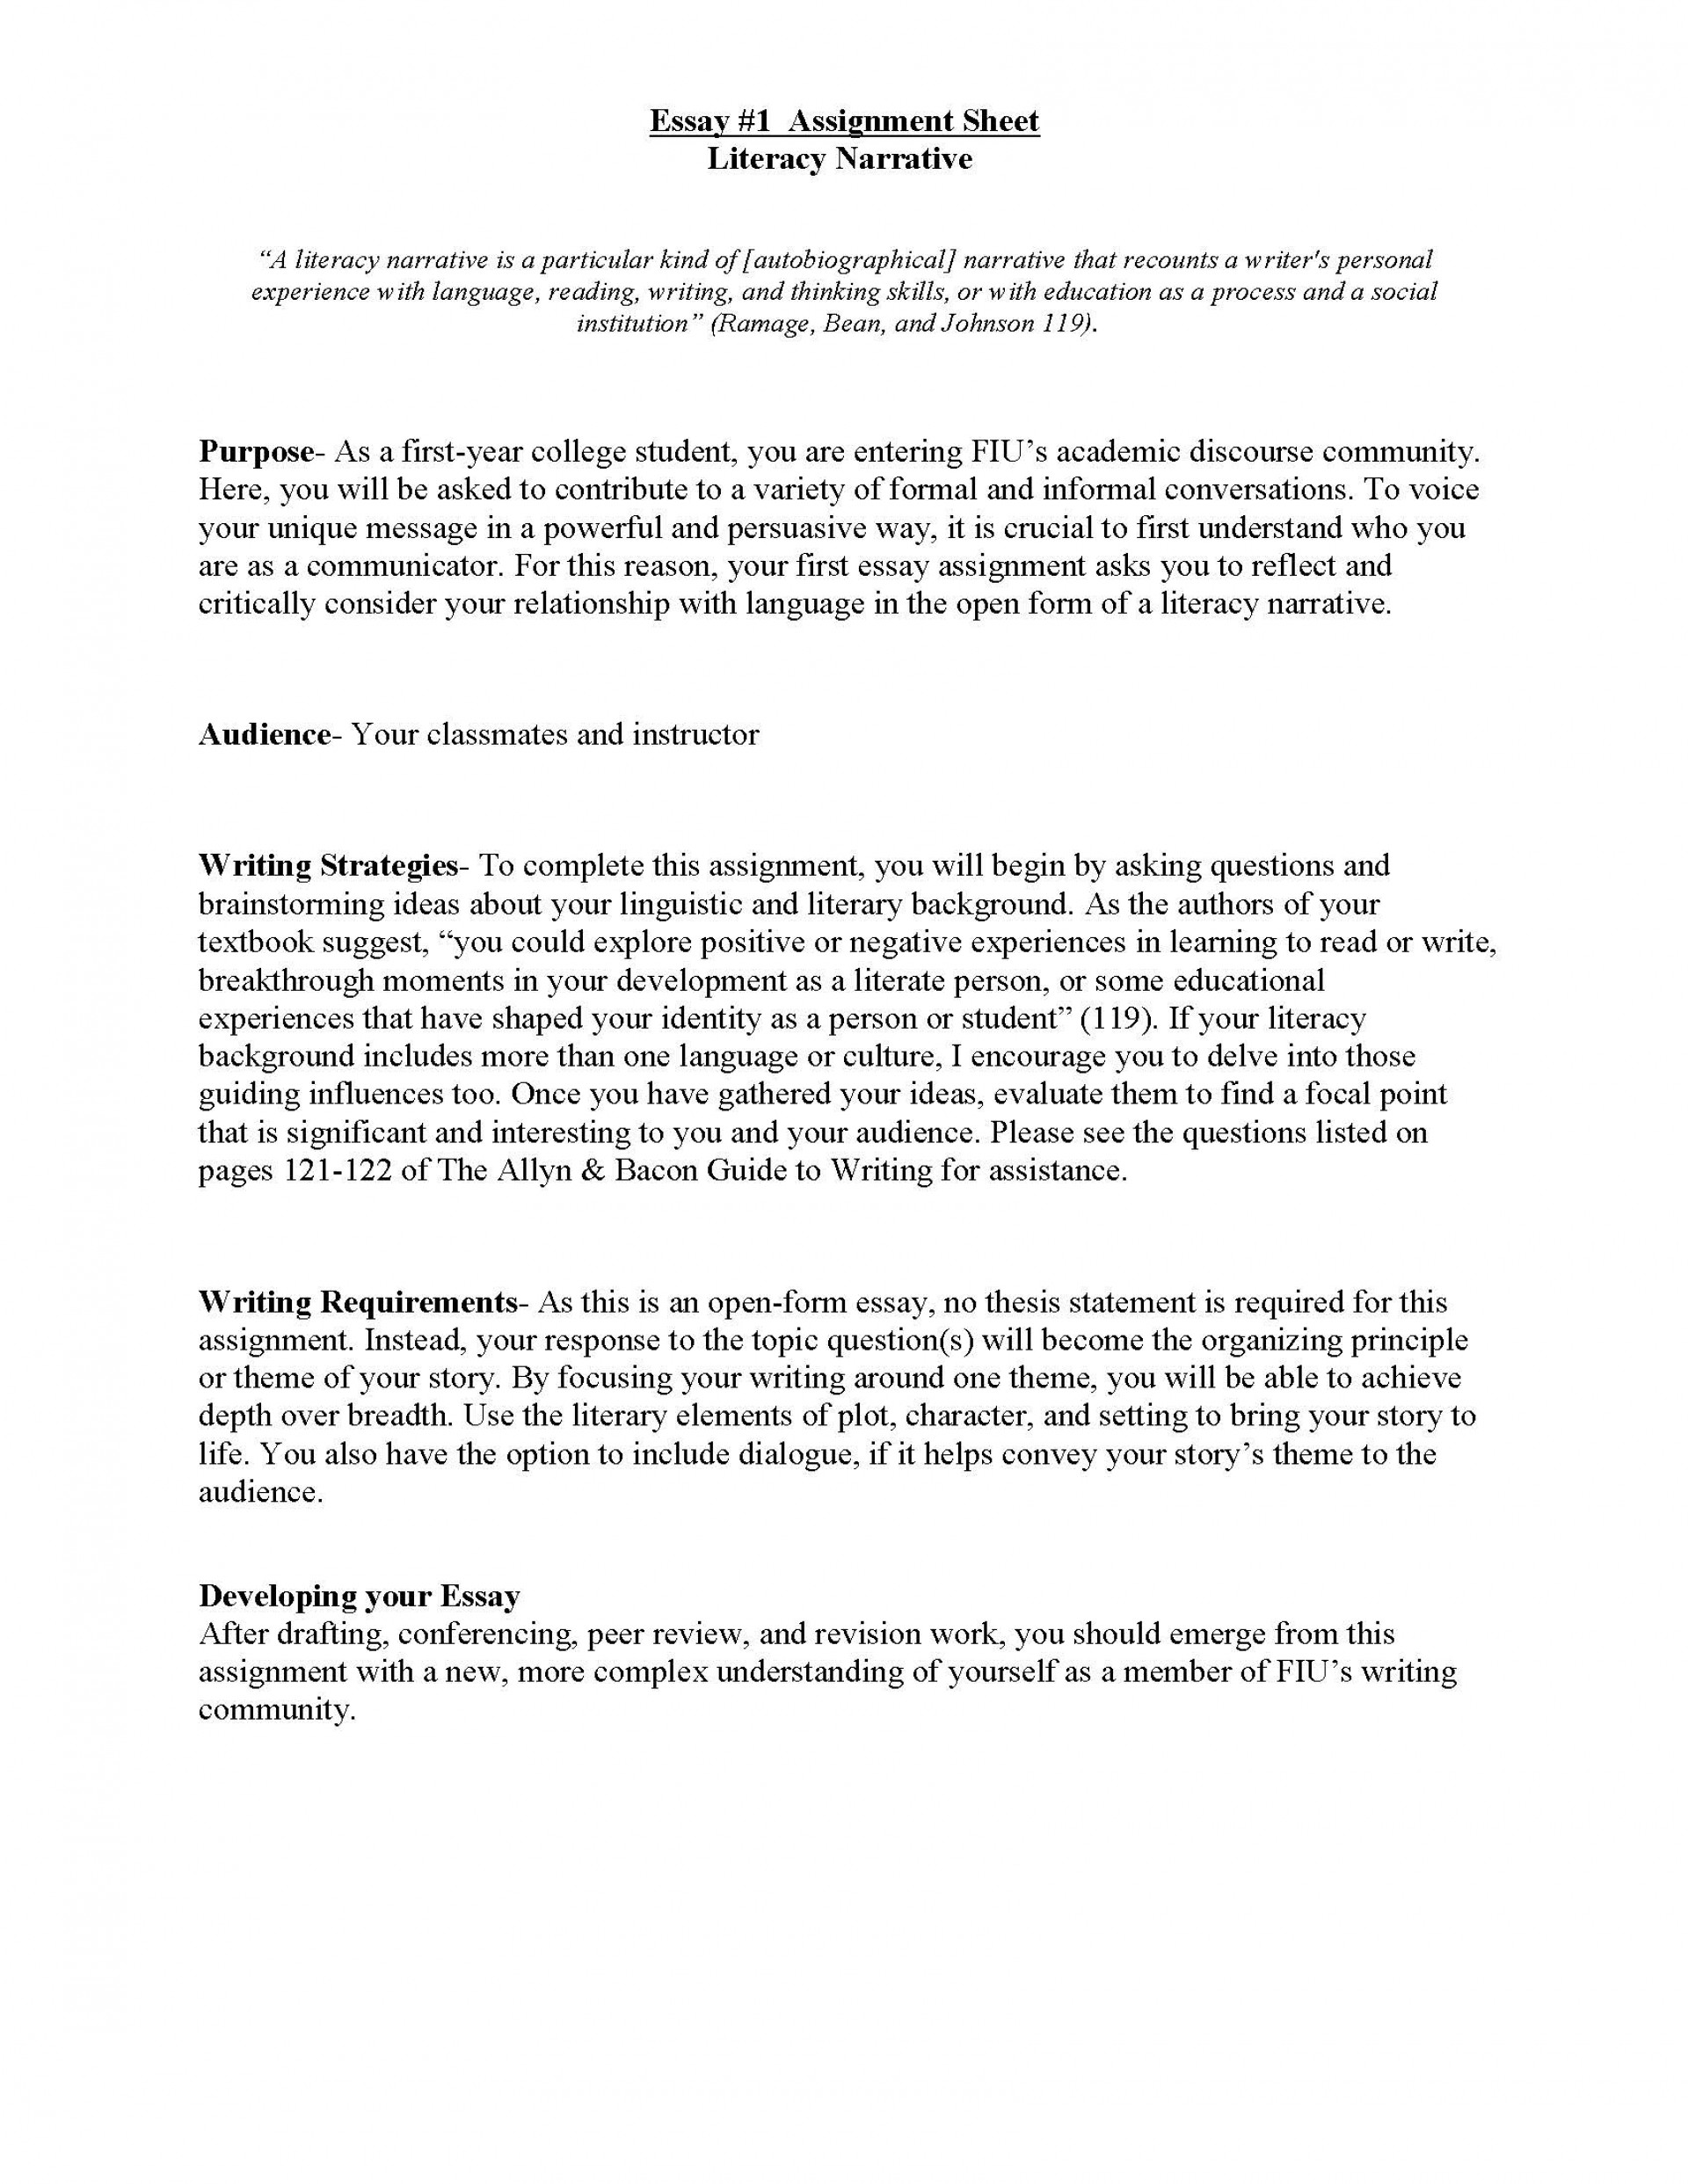 015 Research Paper Literacy Narrative Unit Assignment Spring 2012 Page 1 Human Trafficking Remarkable Example 1920